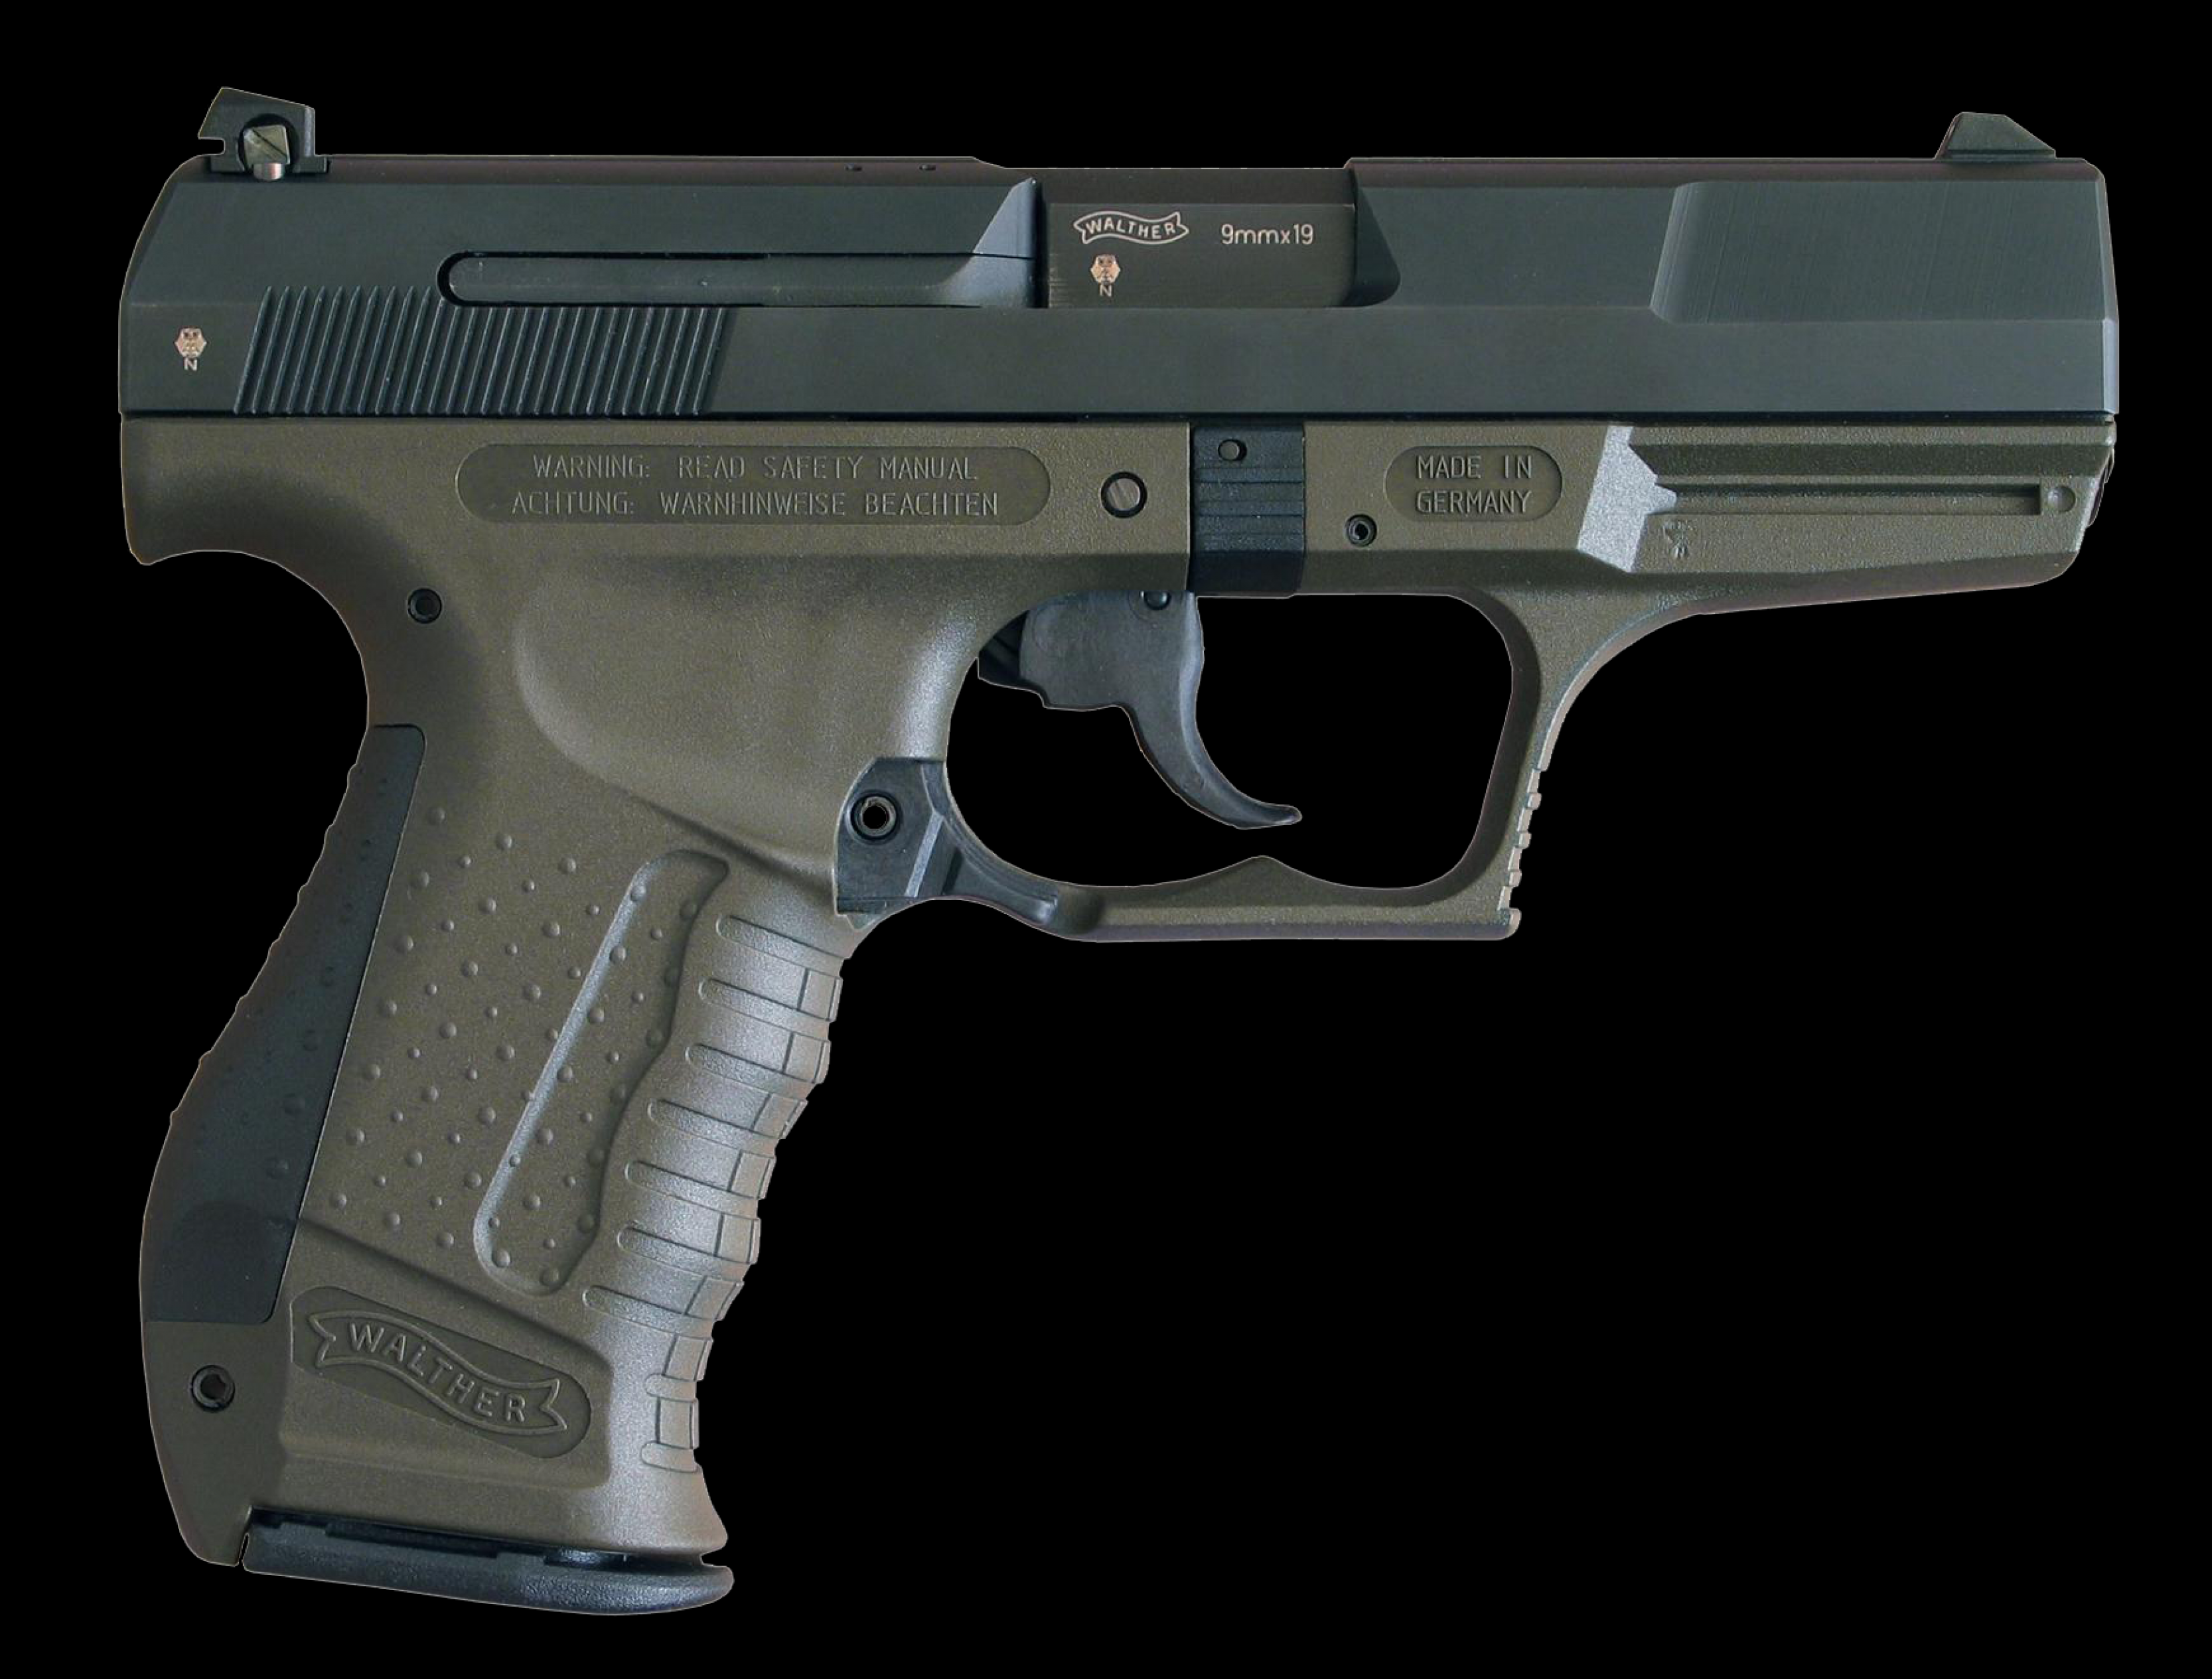 http://www.almrsal.com/wp-content/uploads/2014/07/Walther-P99.png